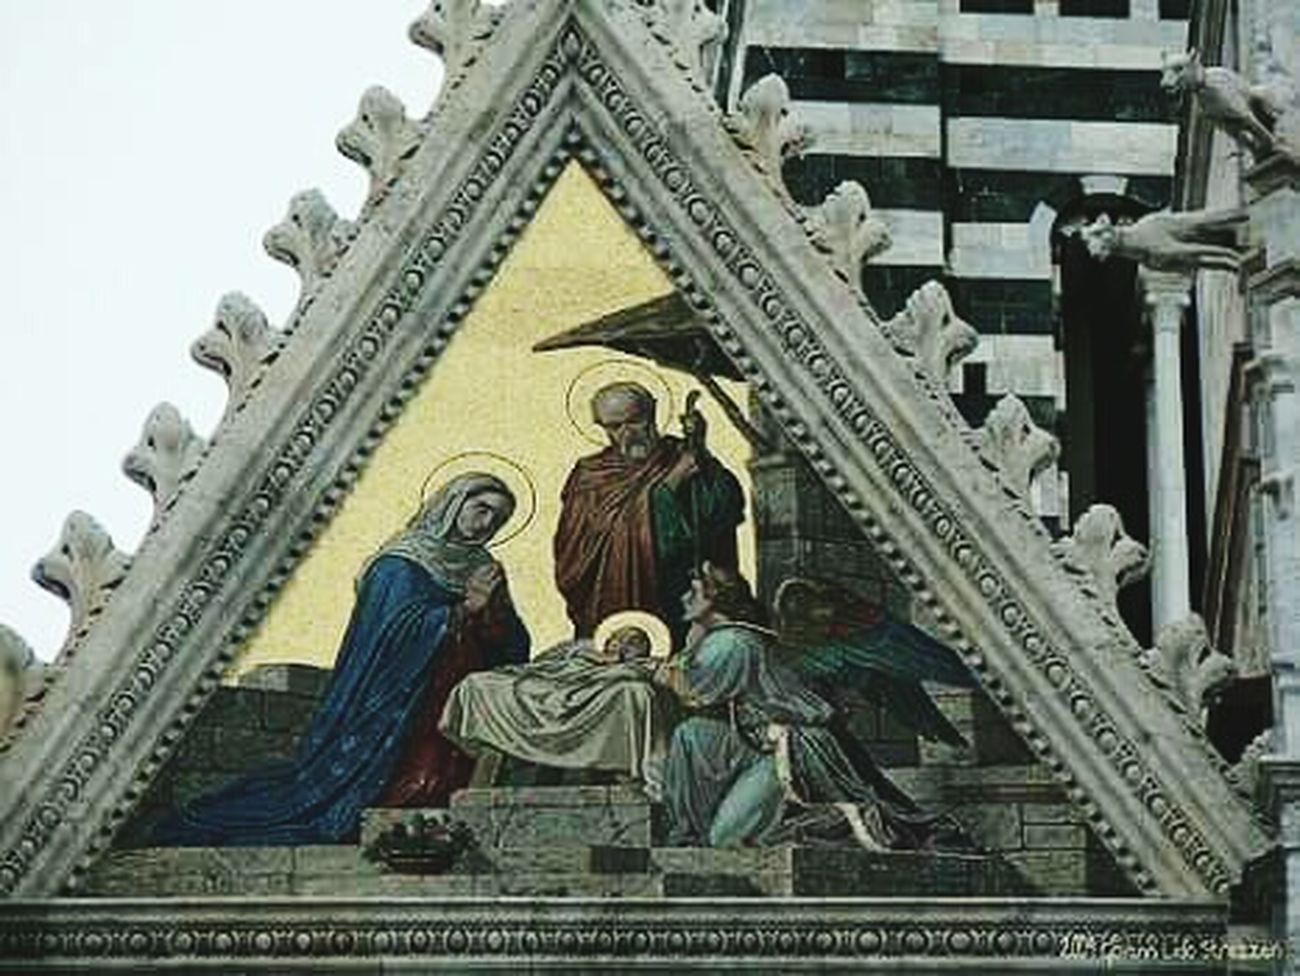 Architecture Travel Destinations History Built Structure Outdoors Religion And Tradition Artphotography Art Duomodisiena Siena, Italy Photography Nativity Colours Of Life Colour Photography Scenics Tranquil Scene Italy Architecture